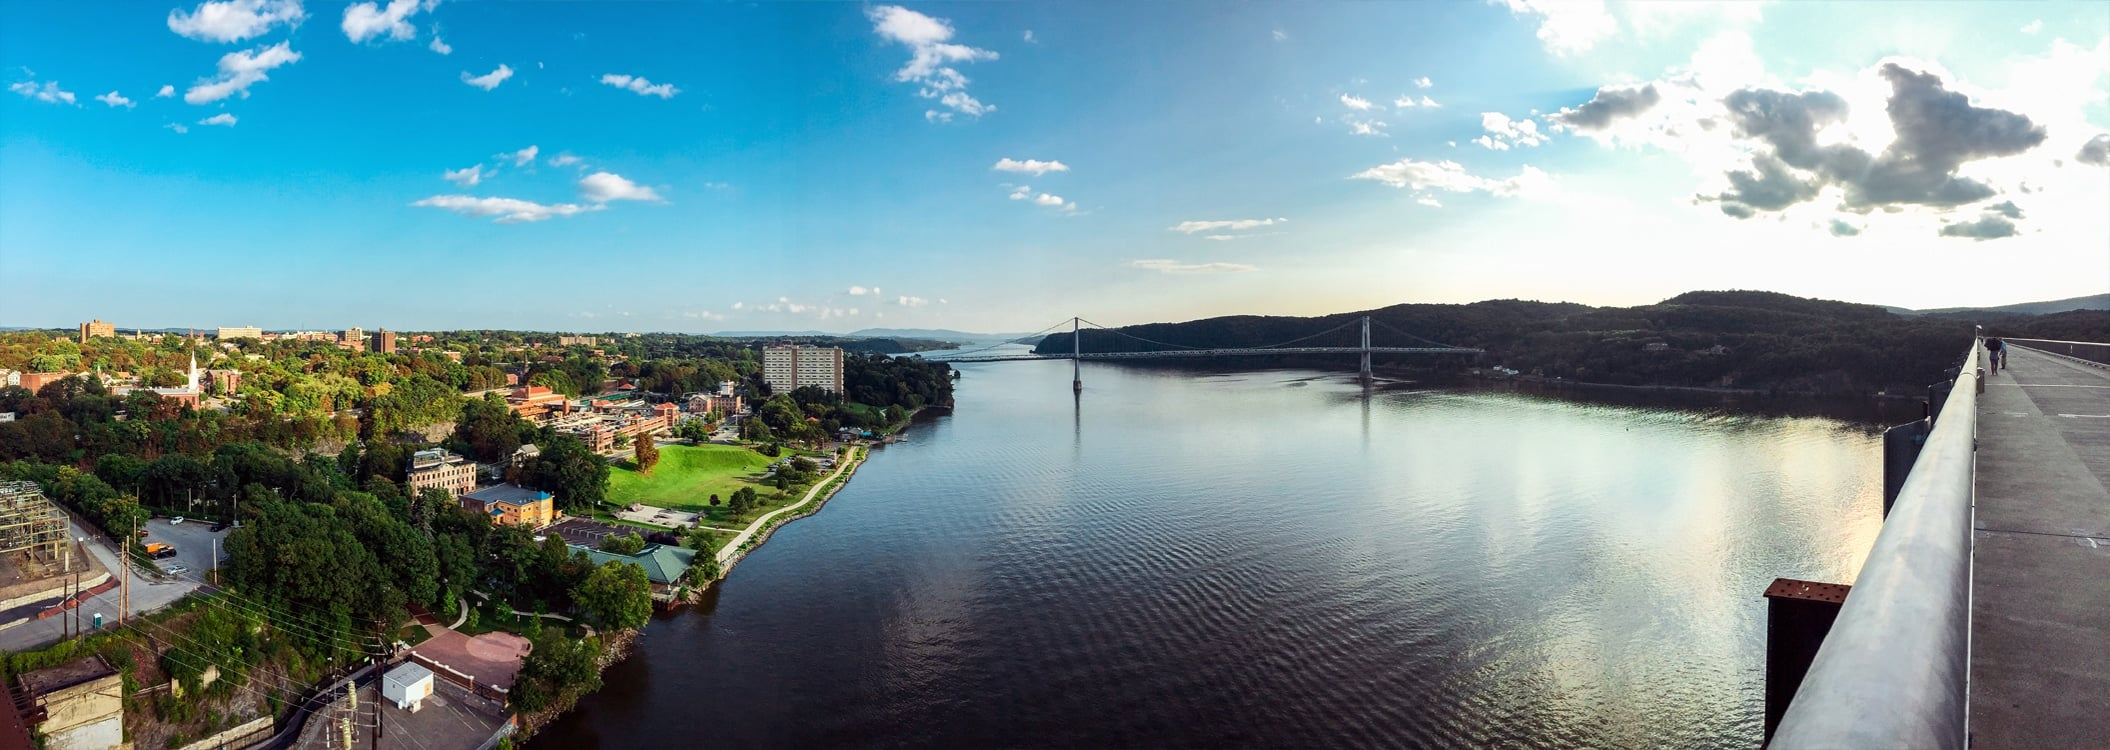 A view of Poughkeepsie, Mid-Hudson Bridge and Highland from Walkway Over the Hudson. | Photo by Andrew Frey